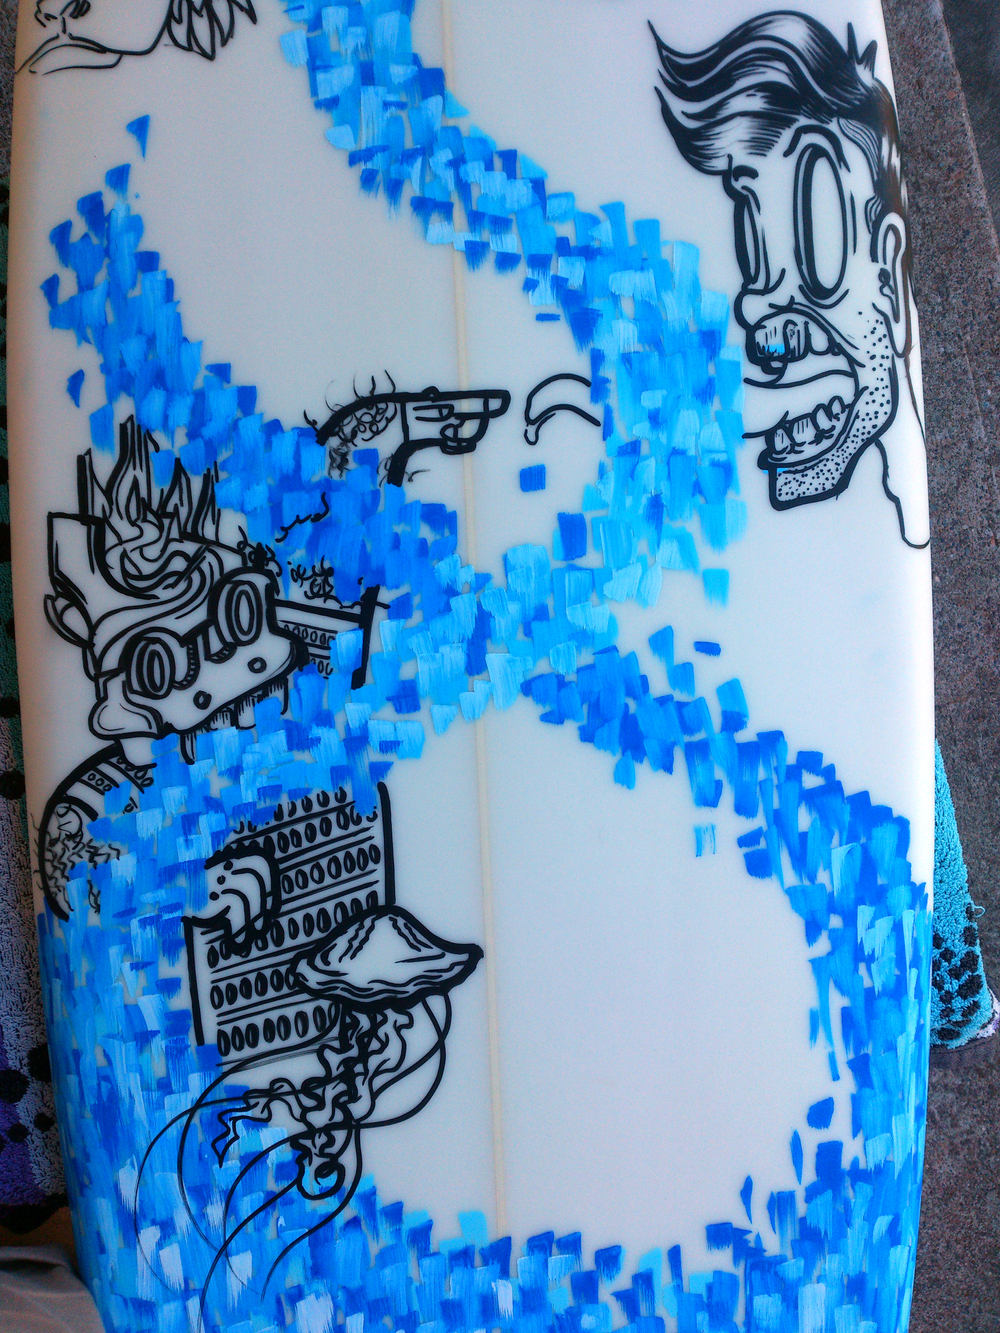 the-blue-begins-hand-painted-posca-sam-shennan-ud3-surfboard-custom.jpg